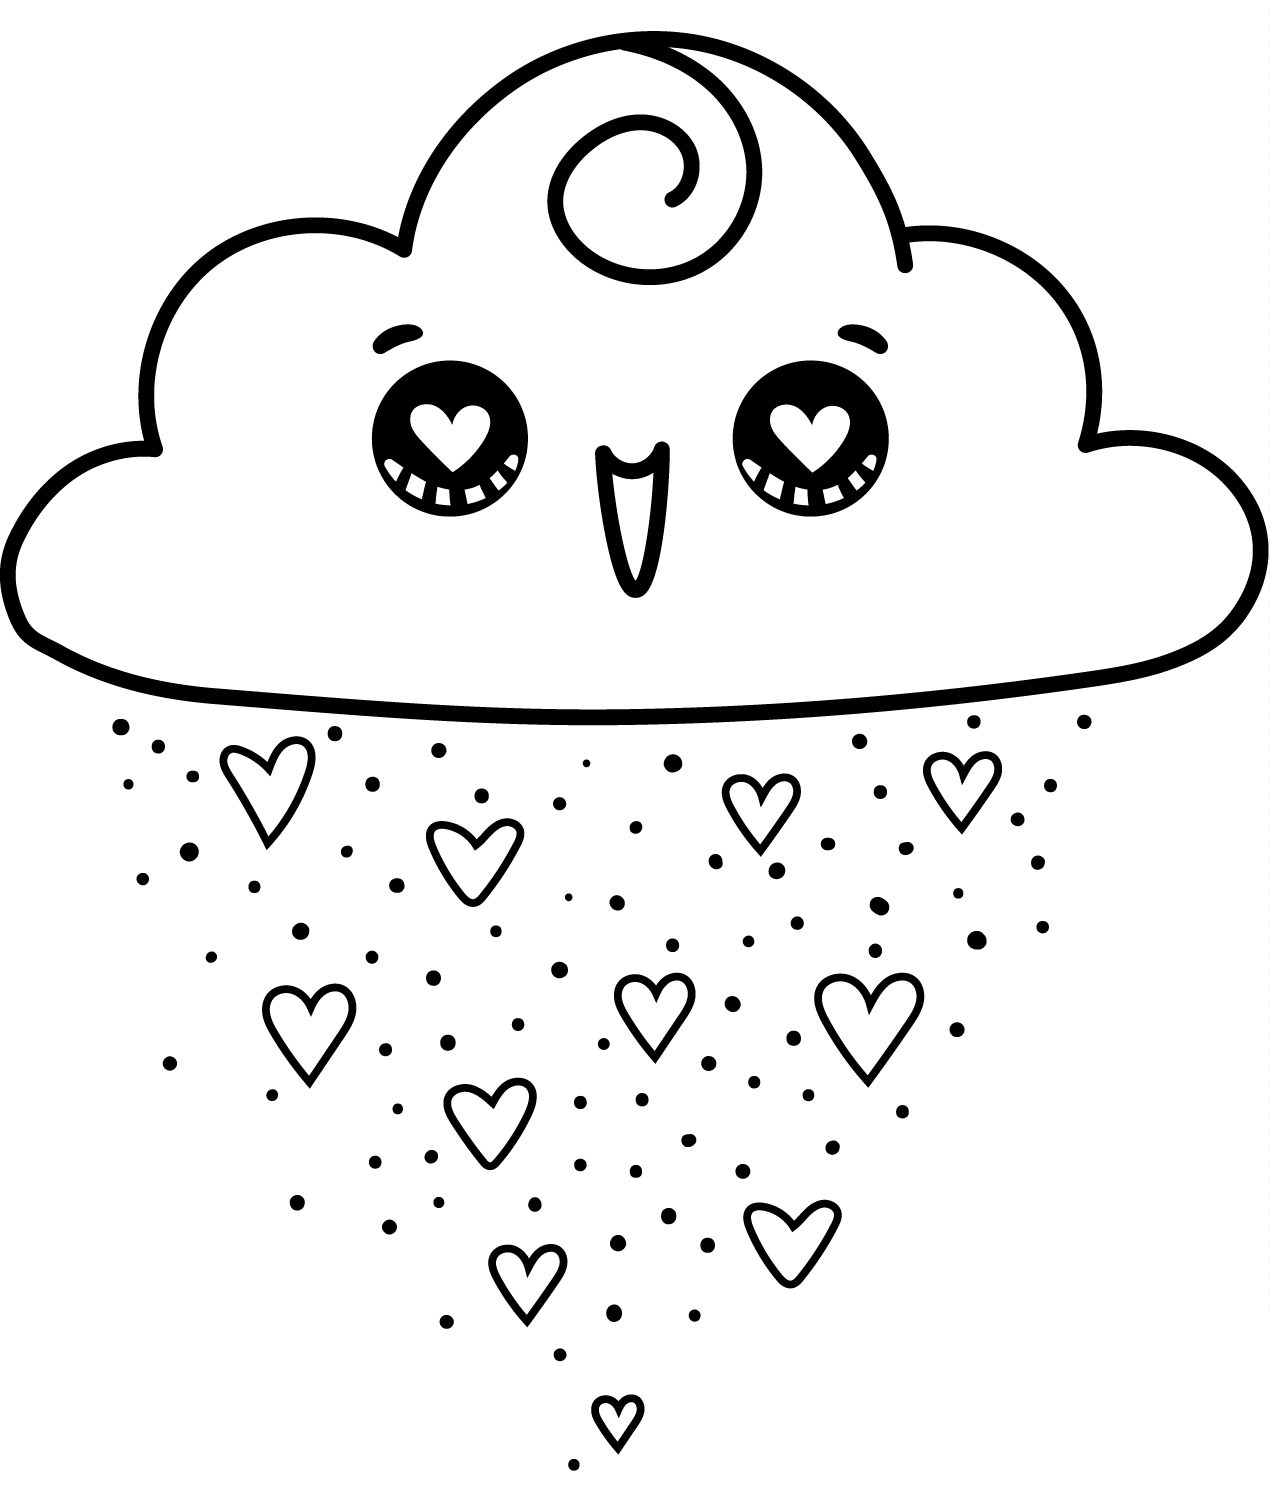 KAWAII HEART HAPPY CLOUD-Clipart Coloring Pages for Kids Adults Art Activities Line Art